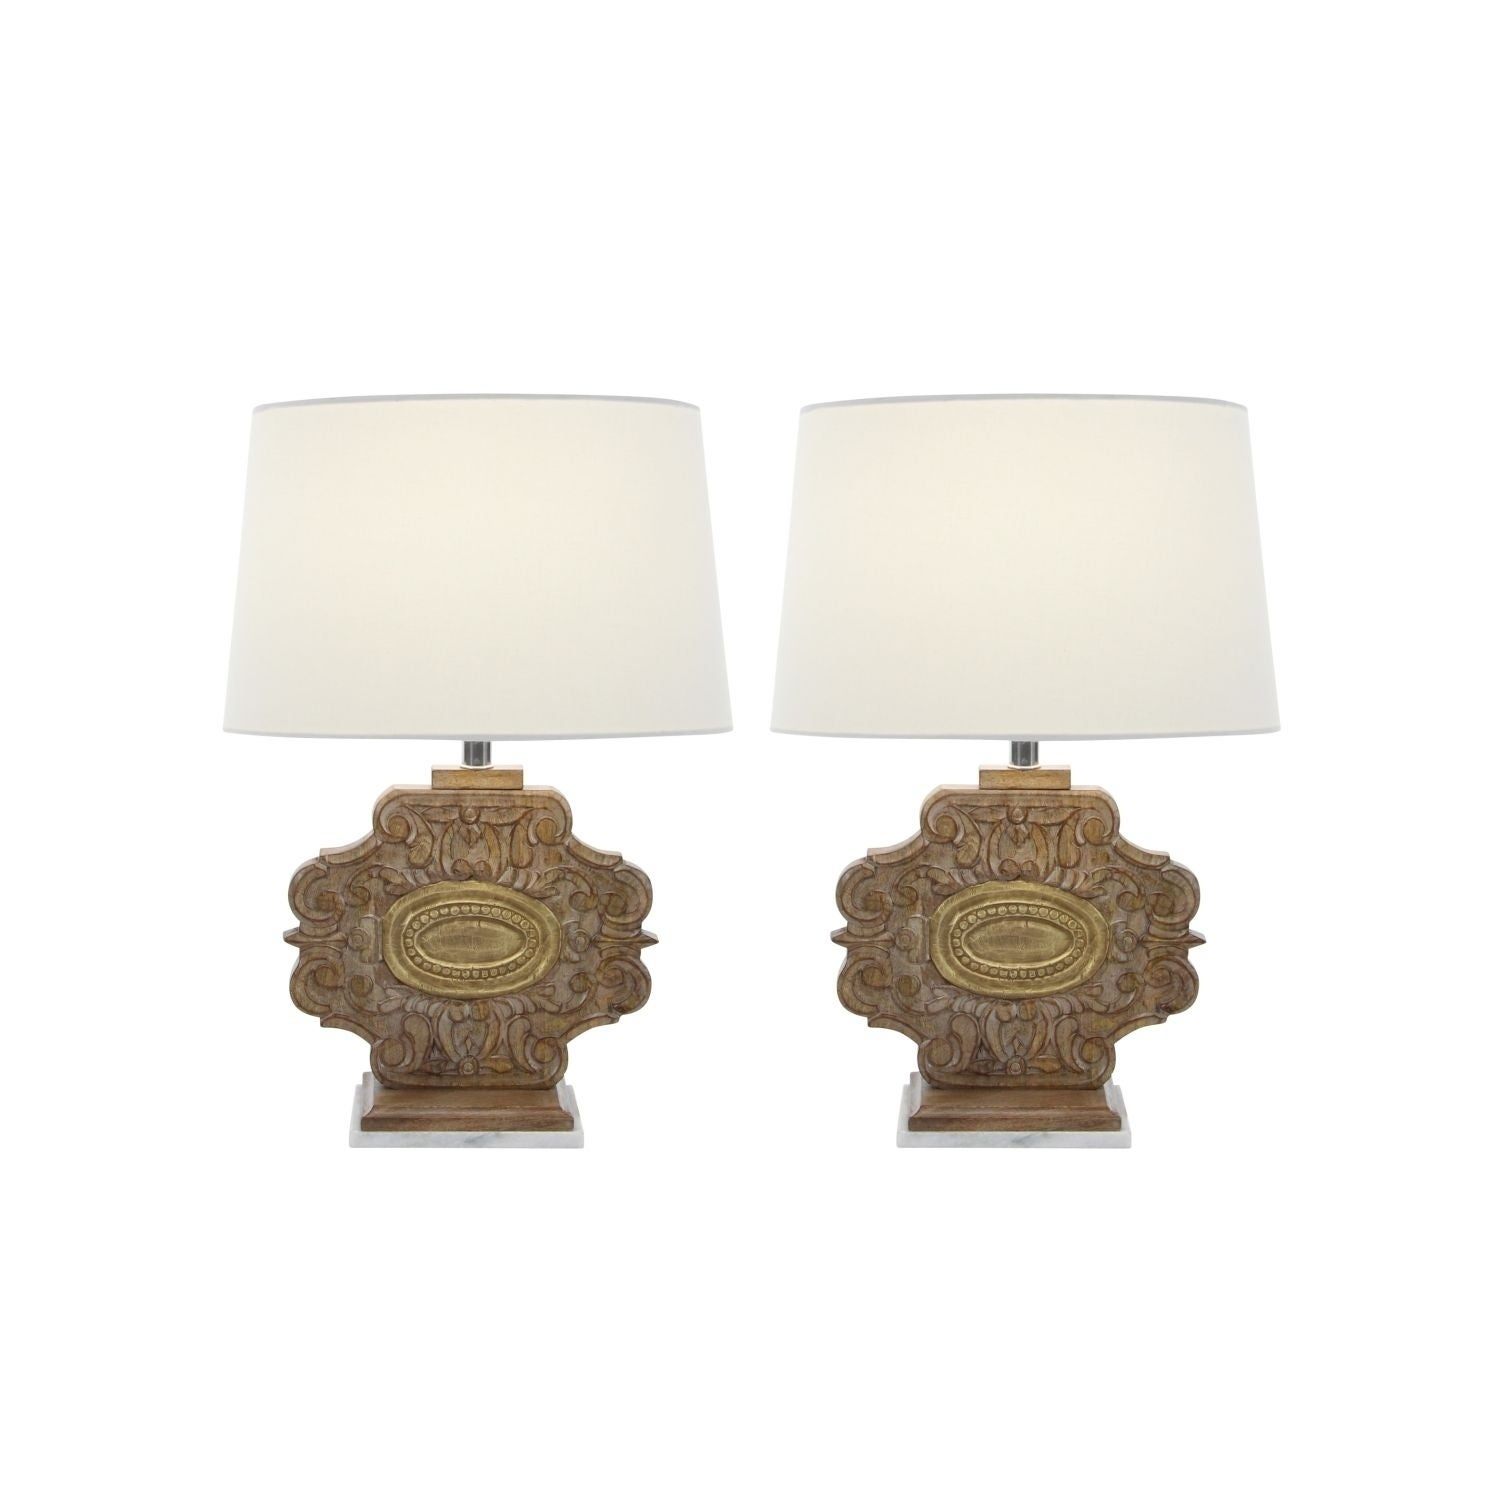 Studio 350 Set of 2, Wood Marble Carved Table Lamp 23 inc...